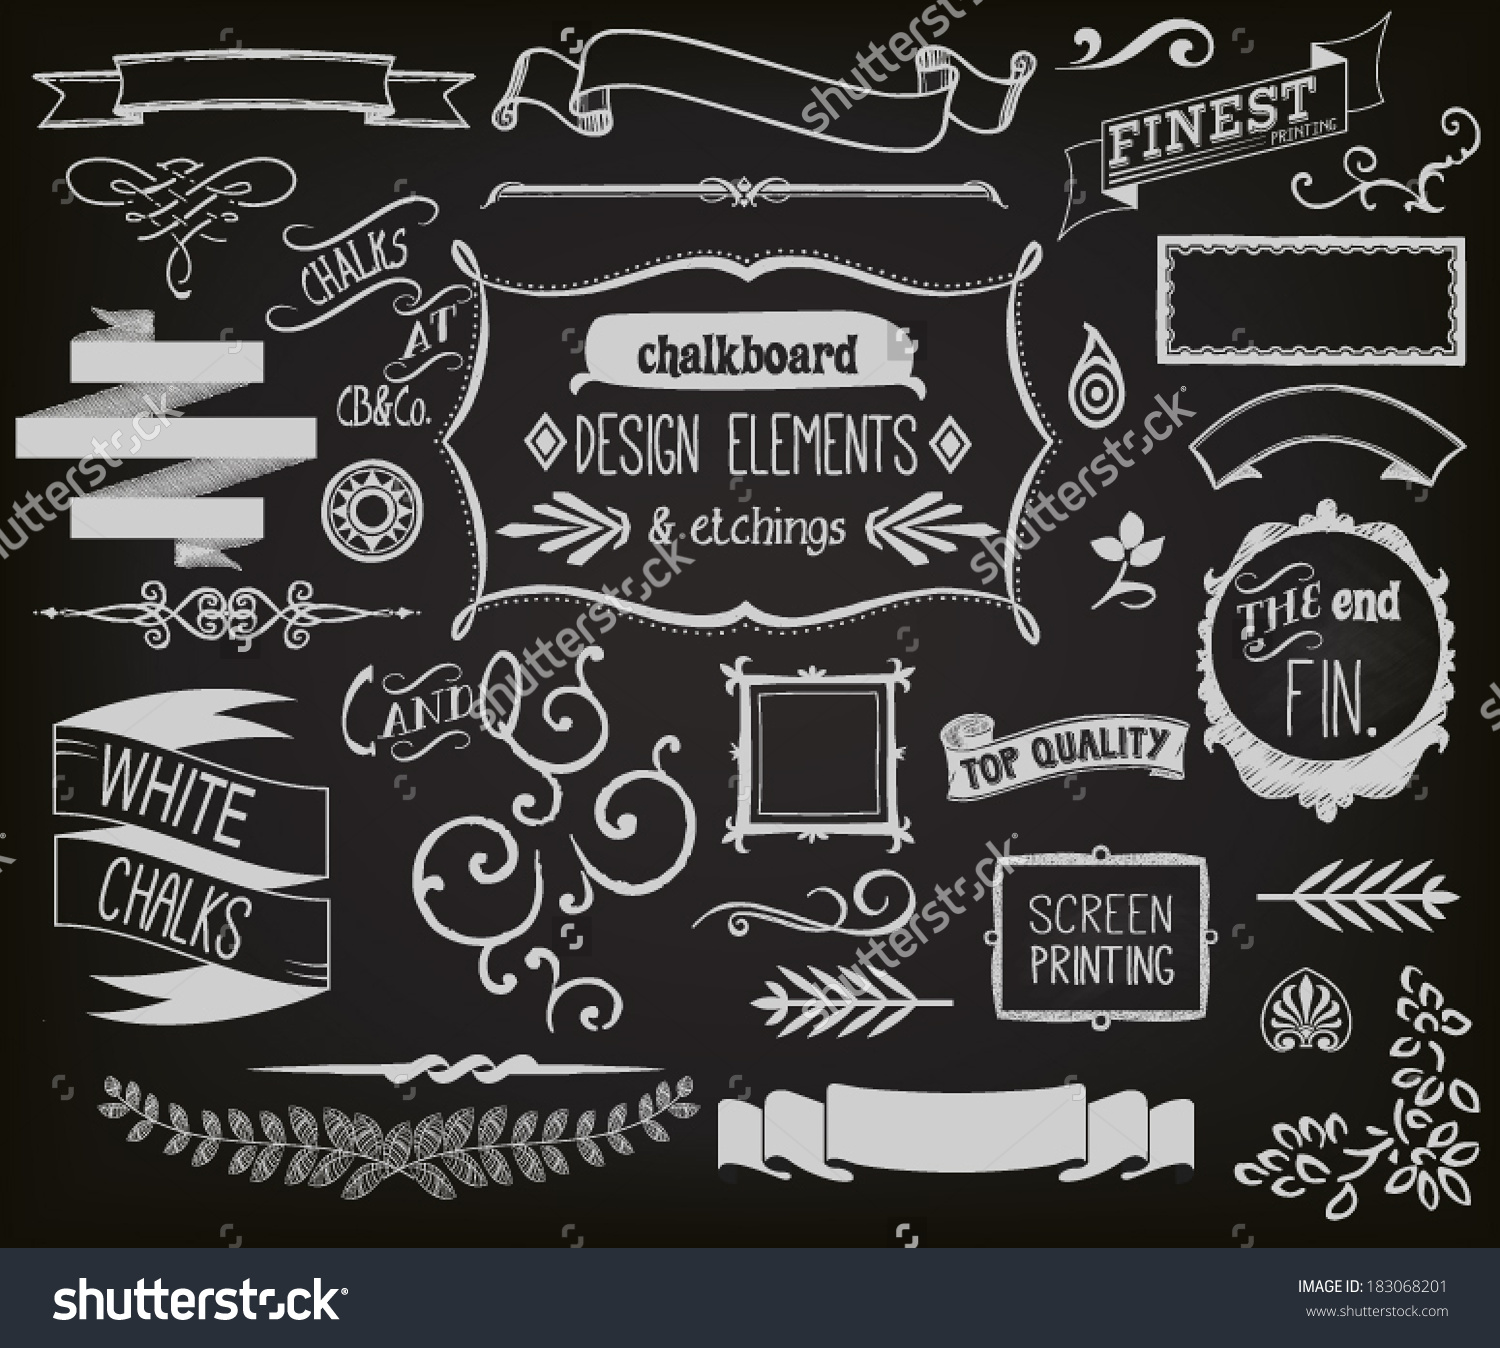 Chalkboard art clipart italian jpg black and white download Chalkboard art clipart - ClipartFest jpg black and white download